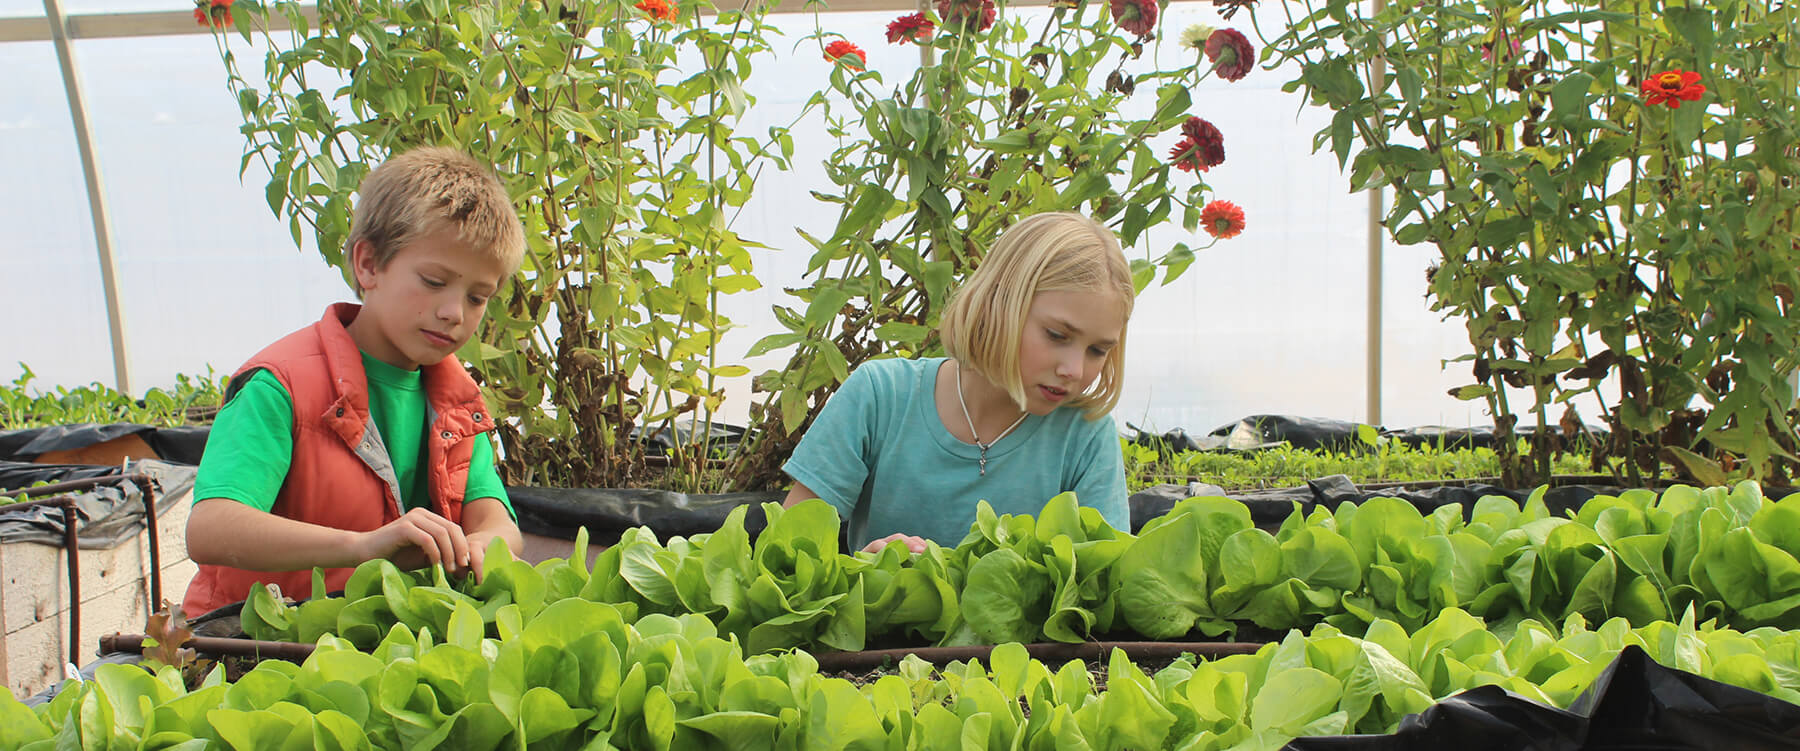 Ada Christian Integrated Outdoor Education Growing in the Greenhouse